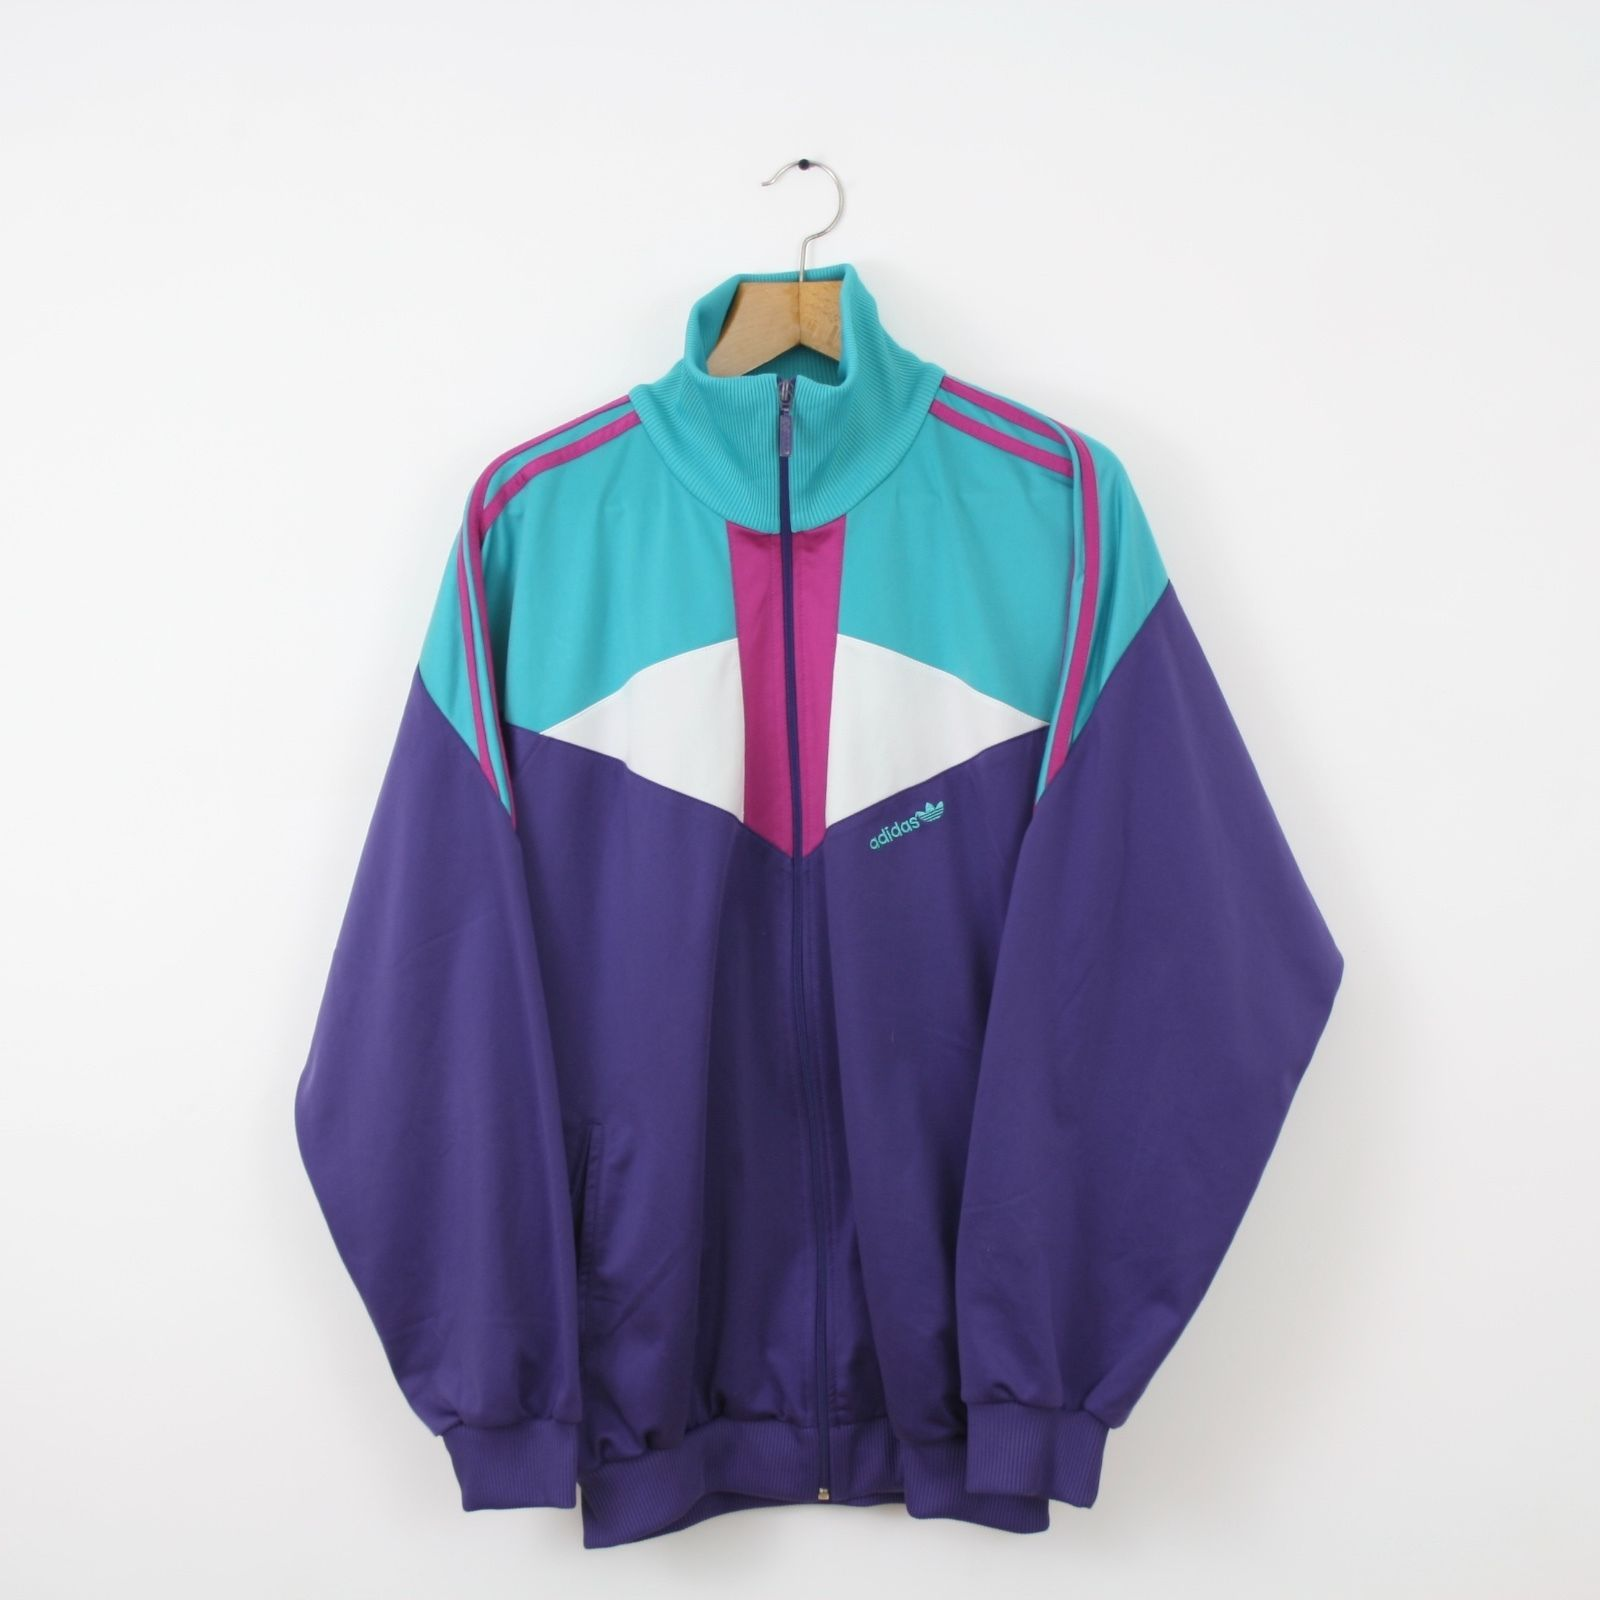 9e932329c Vintage ADIDAS 80s/90s Purple Green Tracksuit Top Jacket | Original Trefoil  | XL in Clothing, Shoes & Accessories, Men's Clothing, Athletic Apparel |  eBay